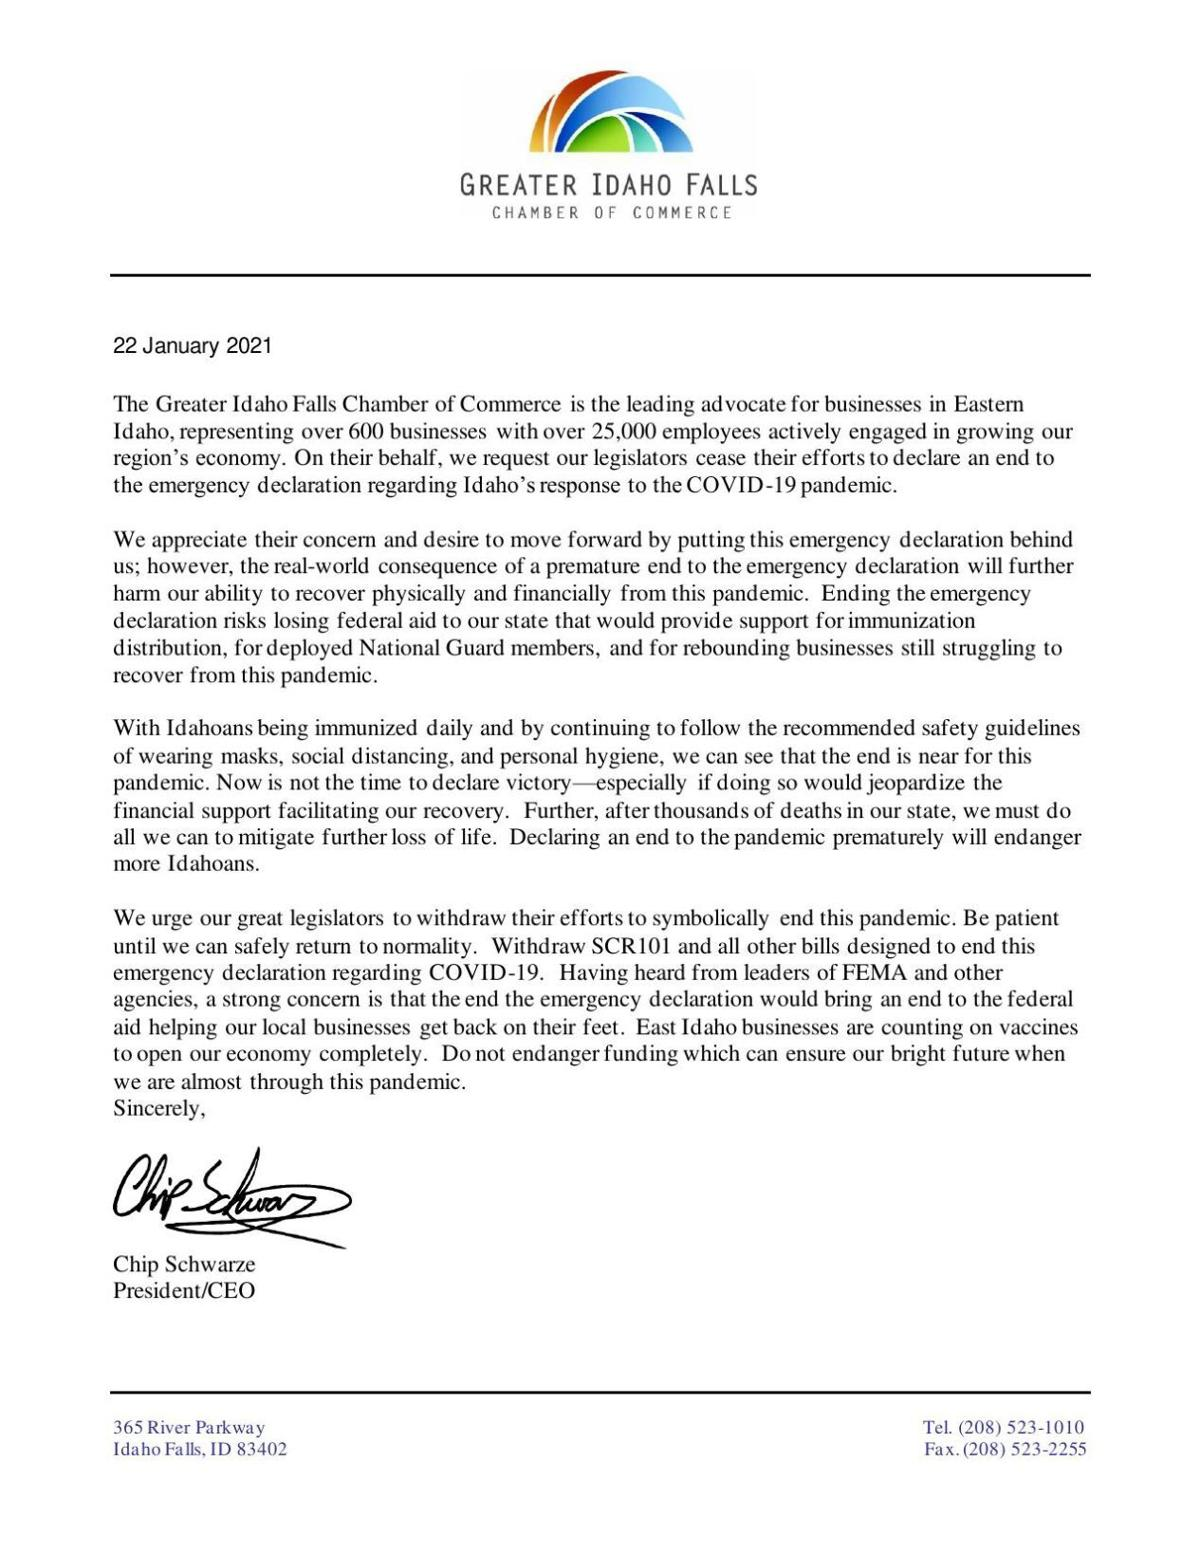 Chamber of Commerce Letter